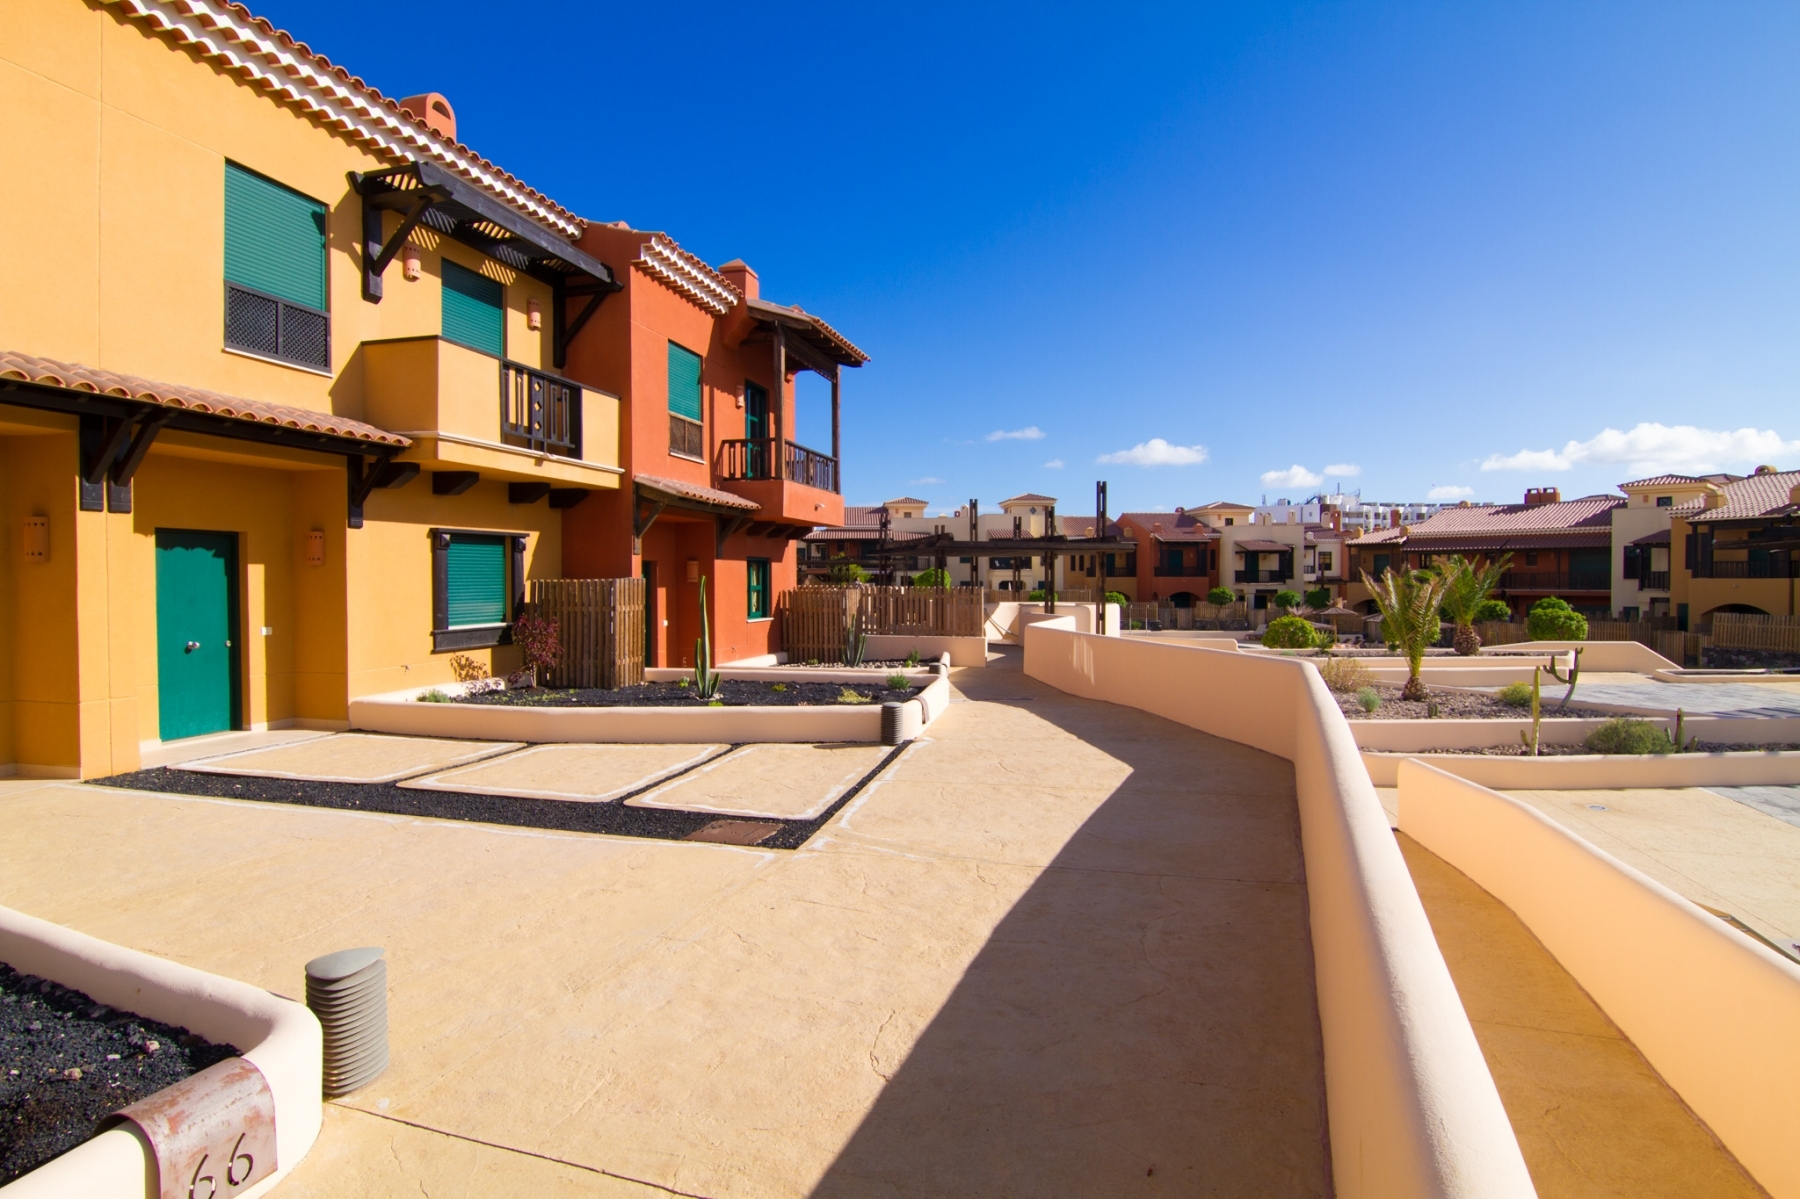 Properties for Sale in Tenerife, Canary Islands, Spain | SylkWayStar Real Estate. Luxury 3 bedrooms townhouse on the first line - San Blas . Image-22472